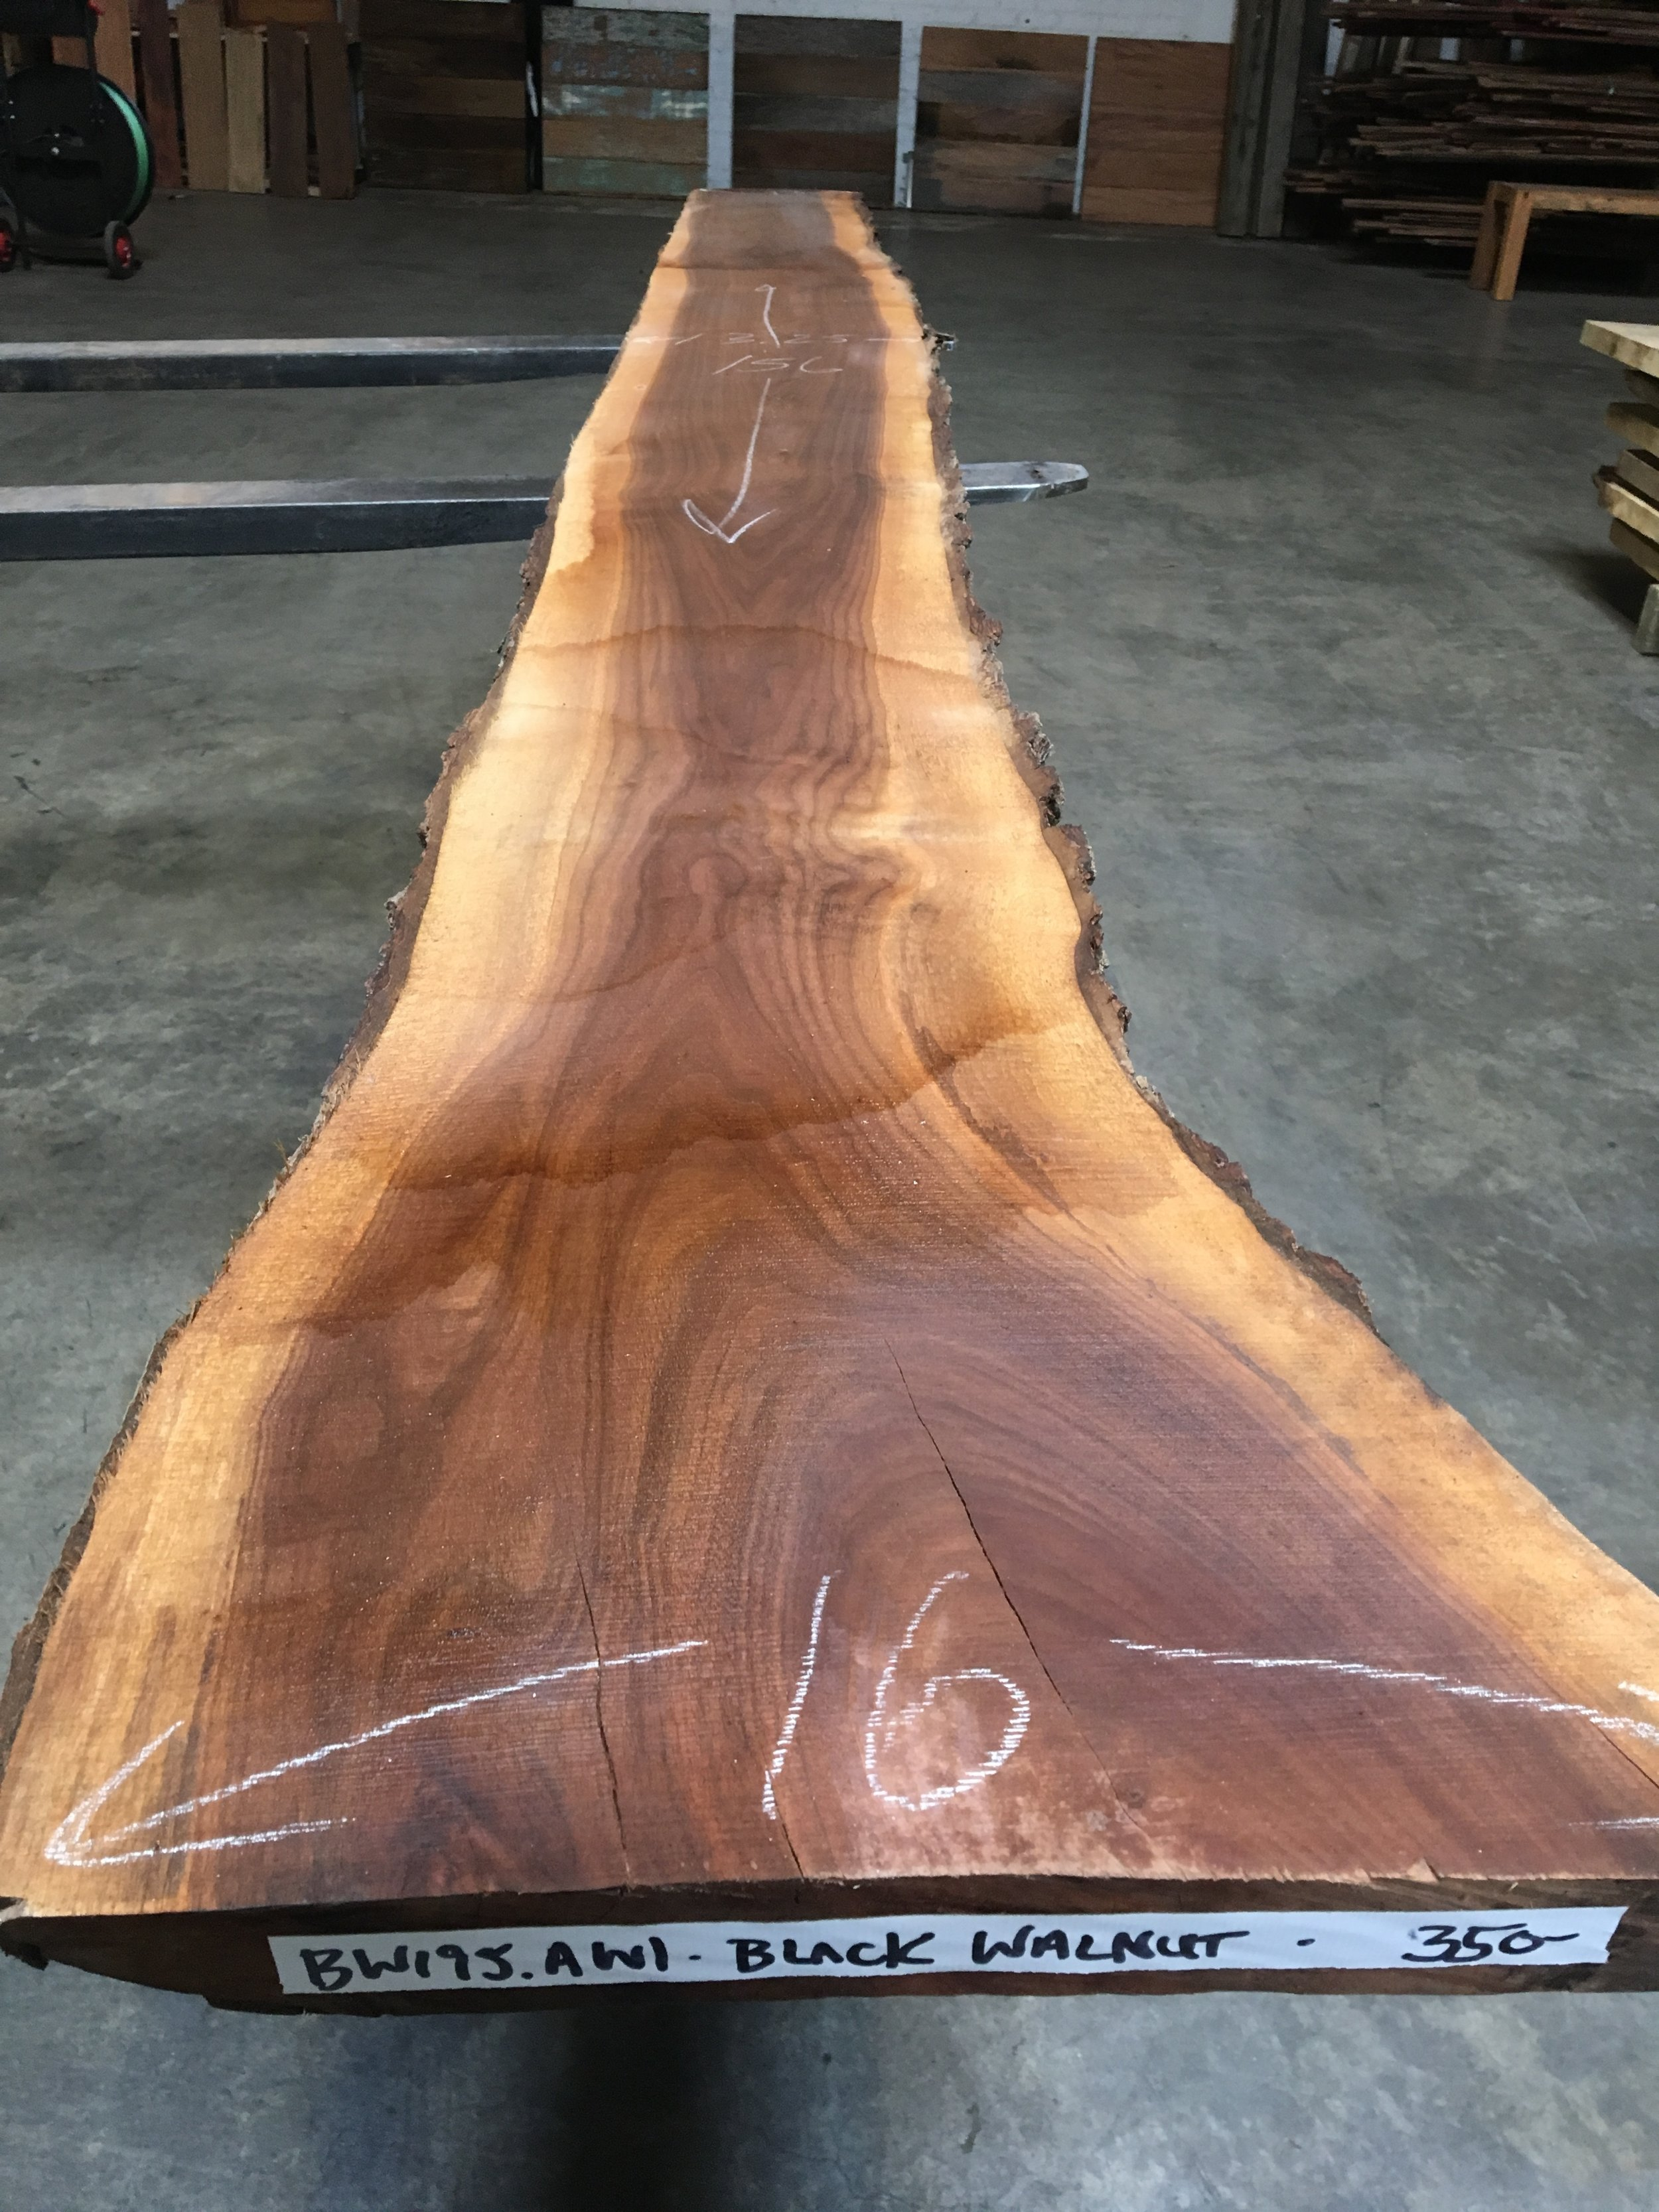 Urban salvaged live edge black walnut slabs, dry and in stock!